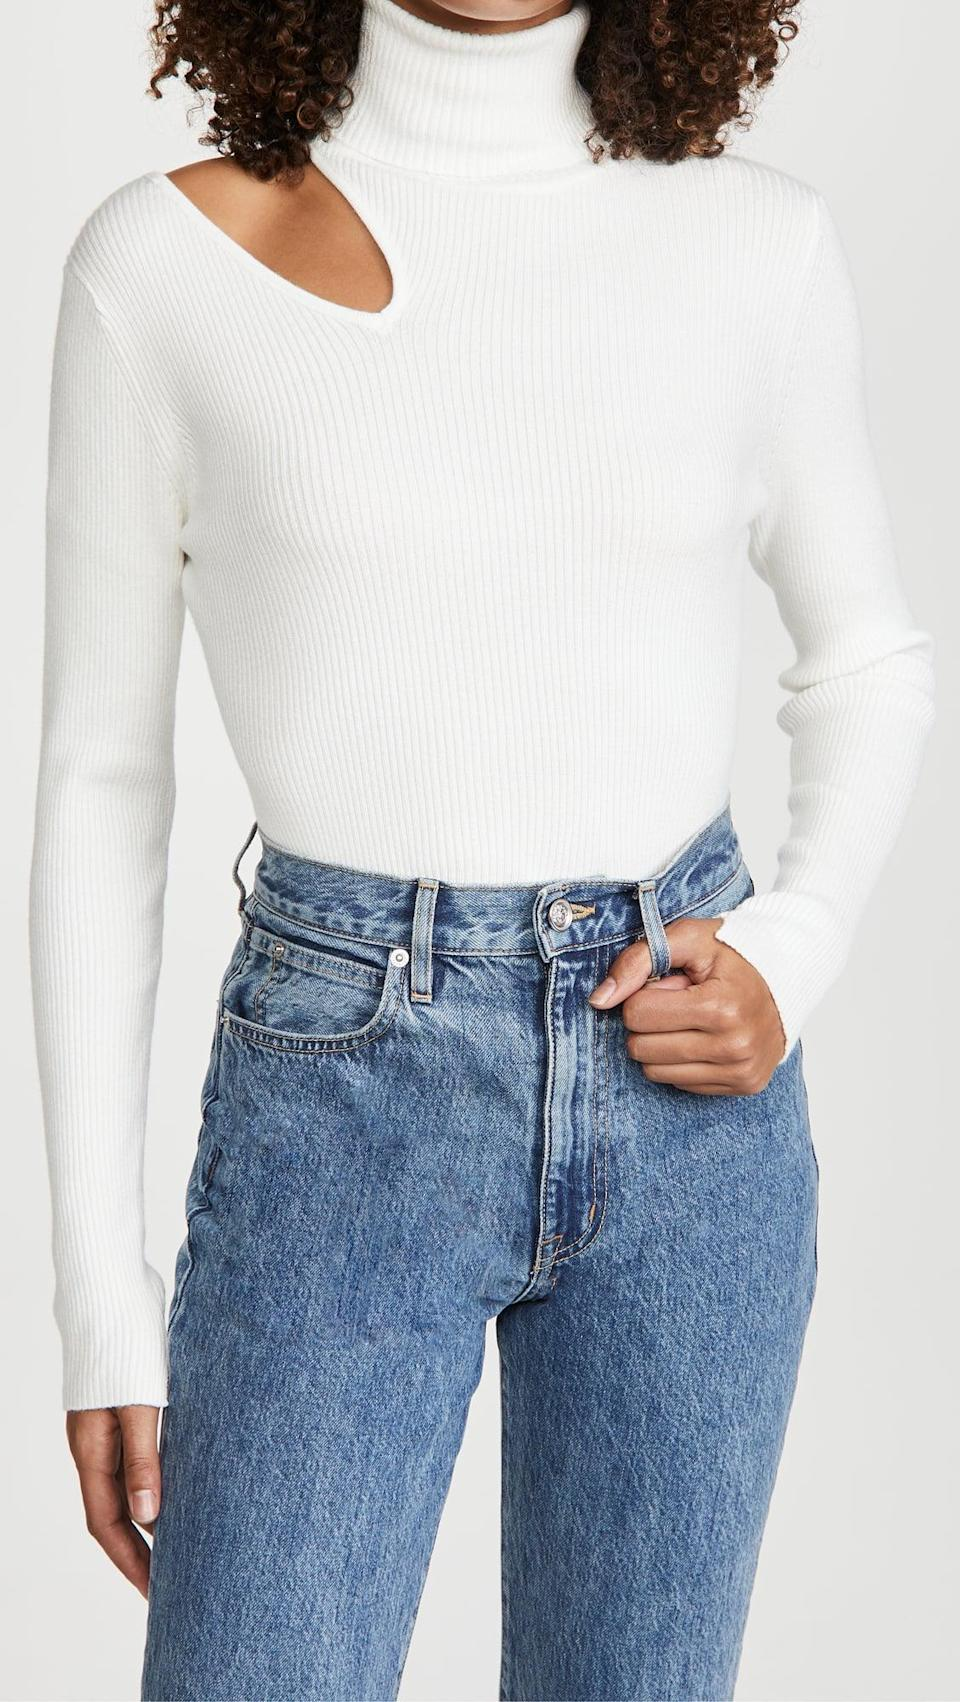 "<p>""I have a ton of old sweaters and crewnecks stacked in my closet, but I'm definitely in the mood for something new. The <span>ASTR the Label Vivi Sweater</span> ($78) is at the top of my wish list, but it's a classic staple with a fun cutout. What I love about it is you can even see the cool design on a Zoom call."" - Krista Jones, associate editor, Shop</p>"